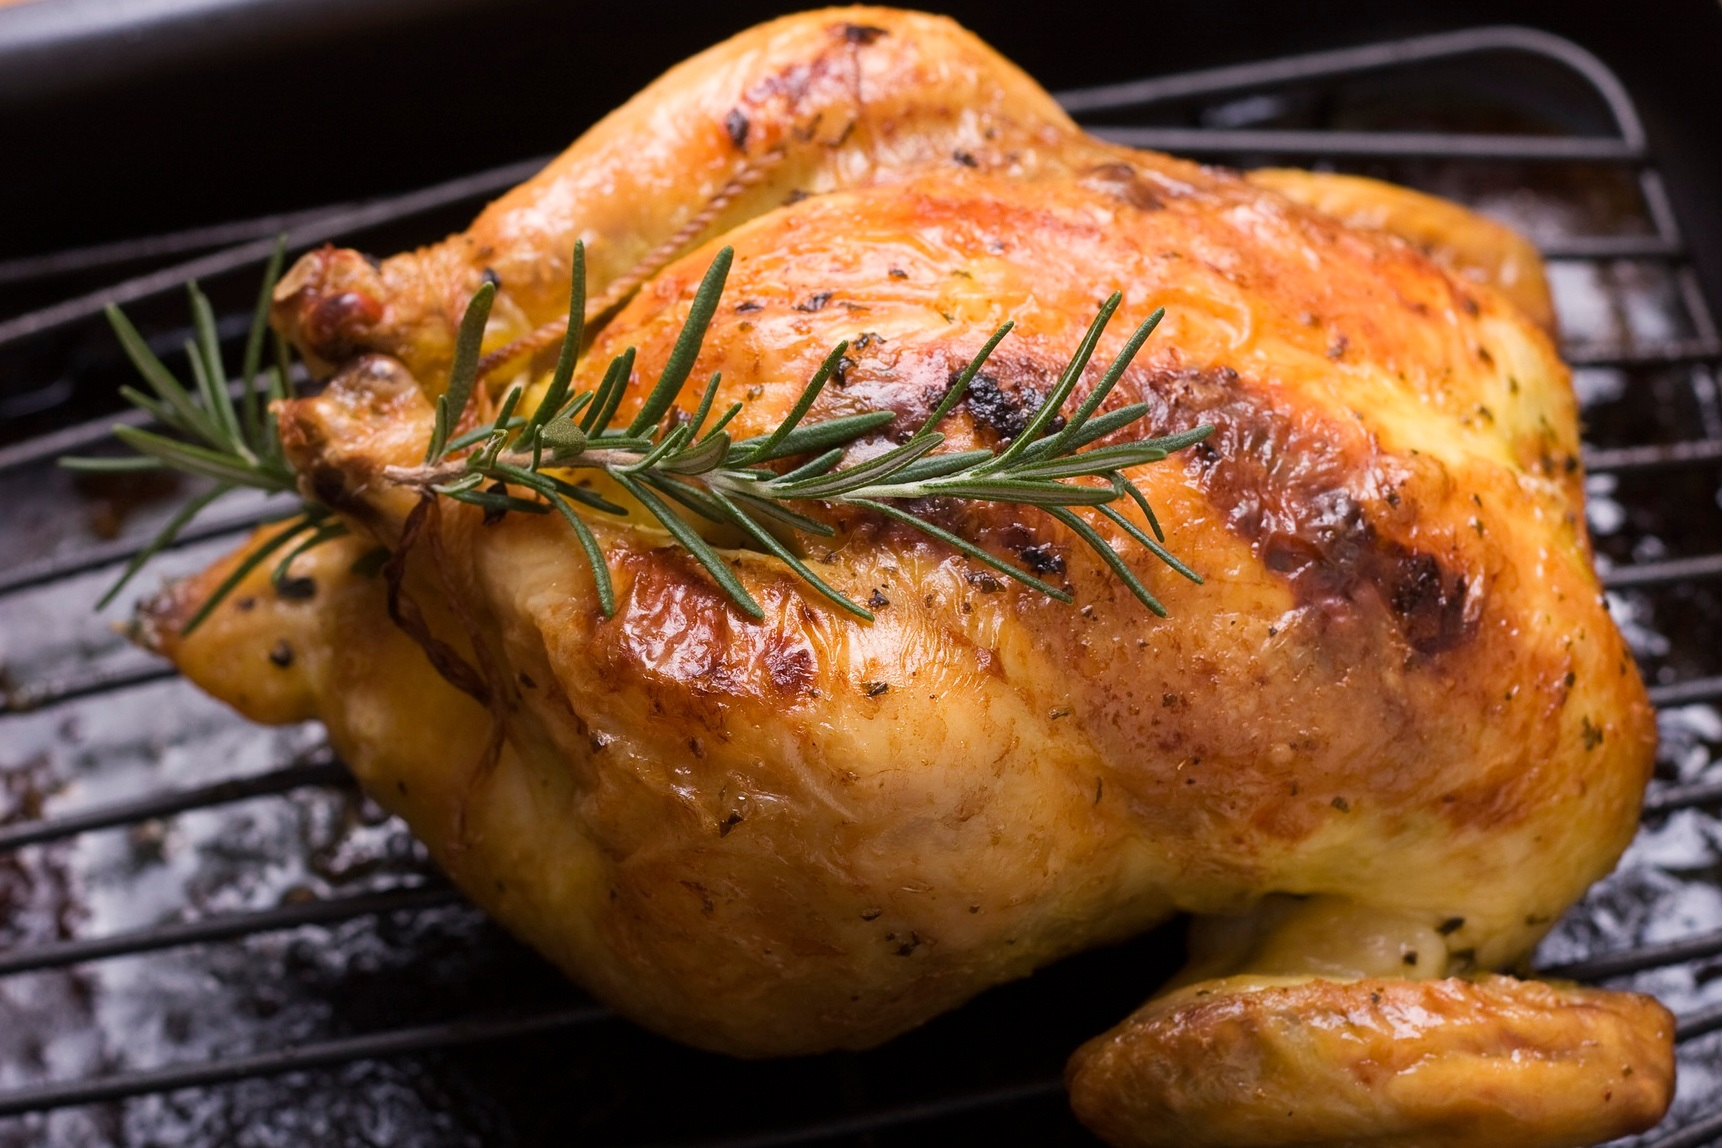 roasted cornish game hen garnished with rosemary sprig in a roasting pan